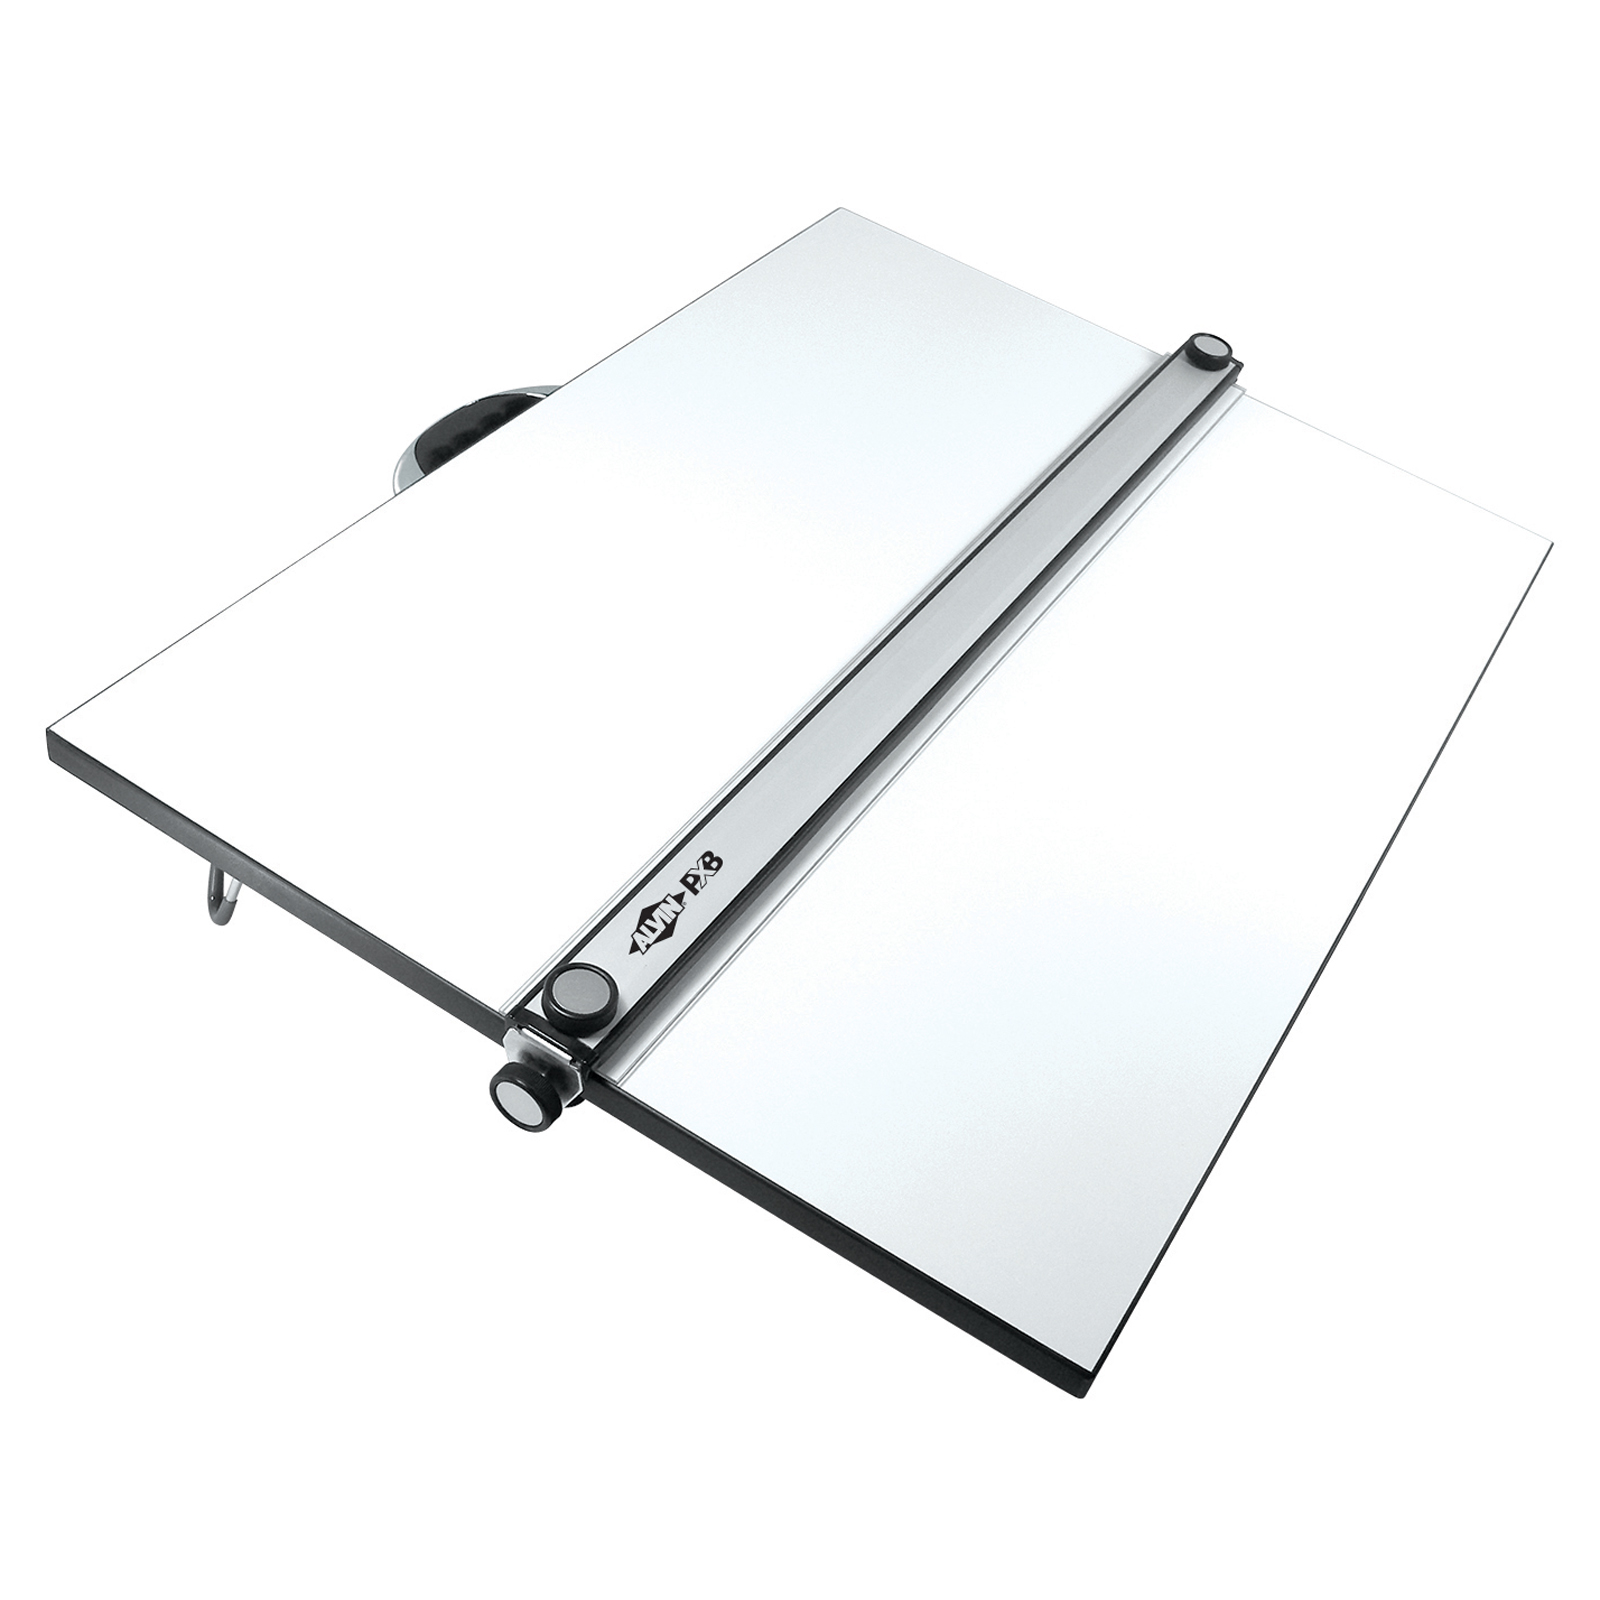 Alvin Parallel Straightedge Portable Drafting Board